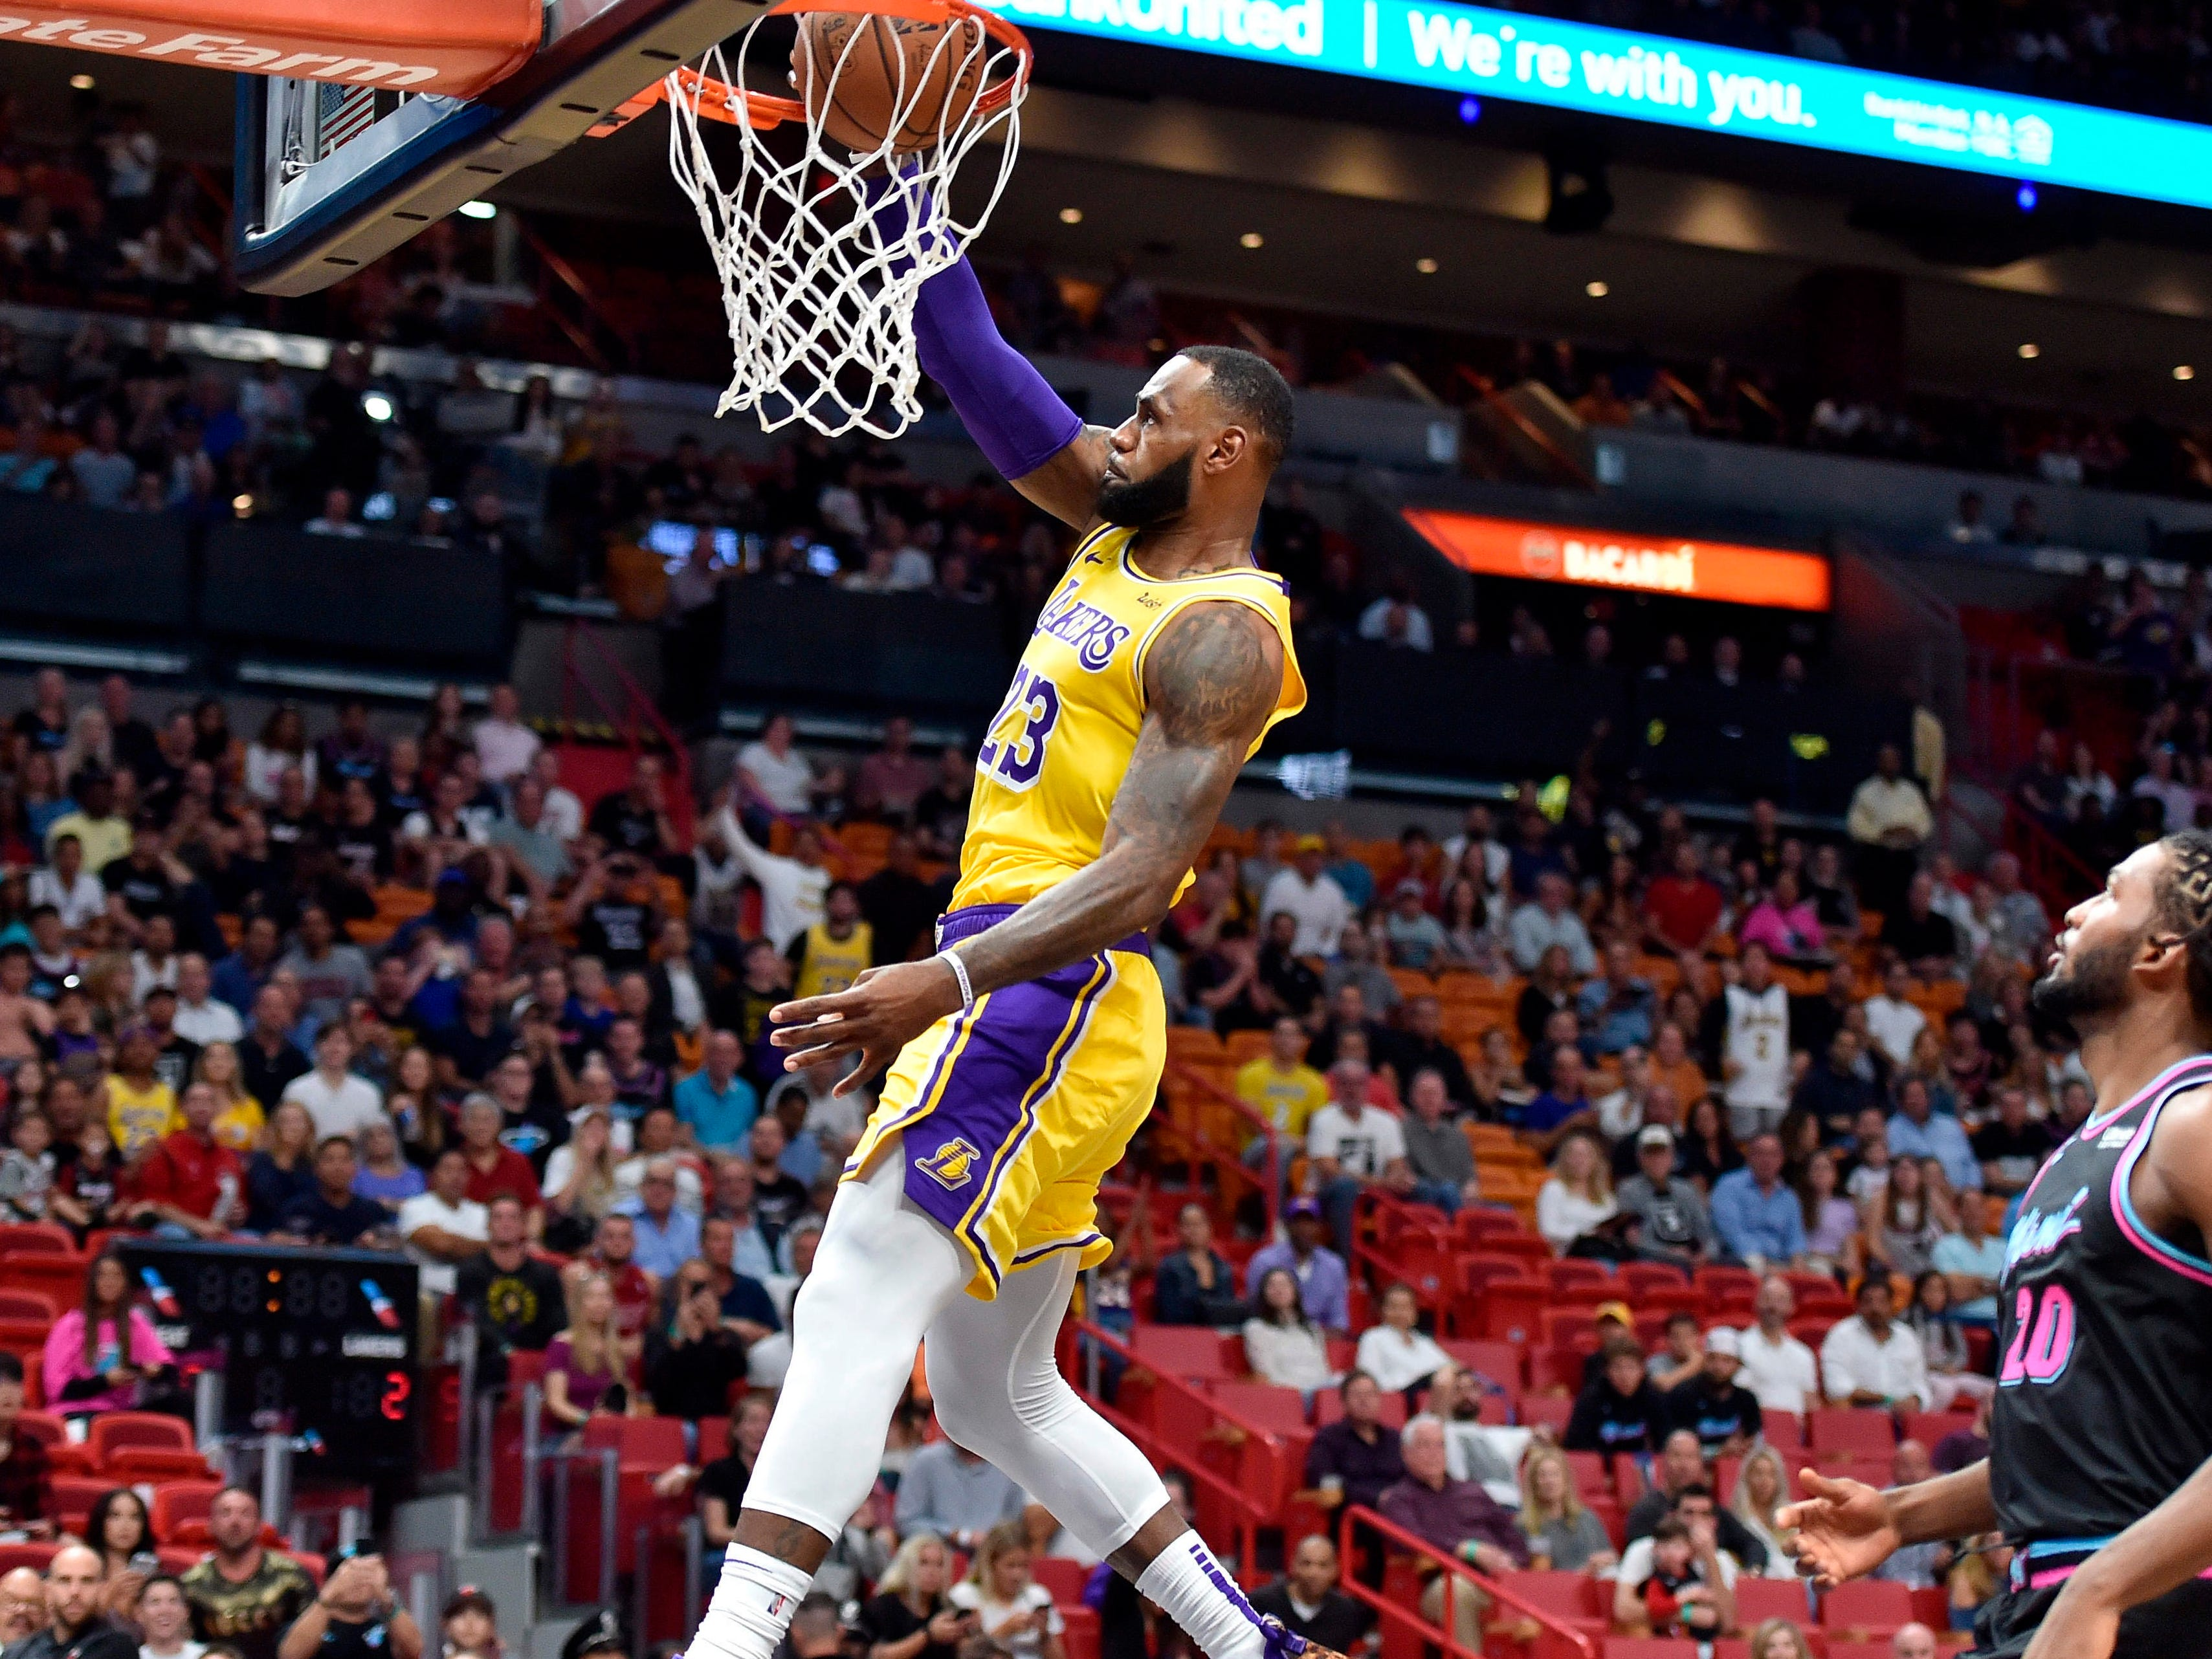 Nov. 18: Lakers forward LeBron James slams home two of his season-high 51 points against the Heat in Miami.